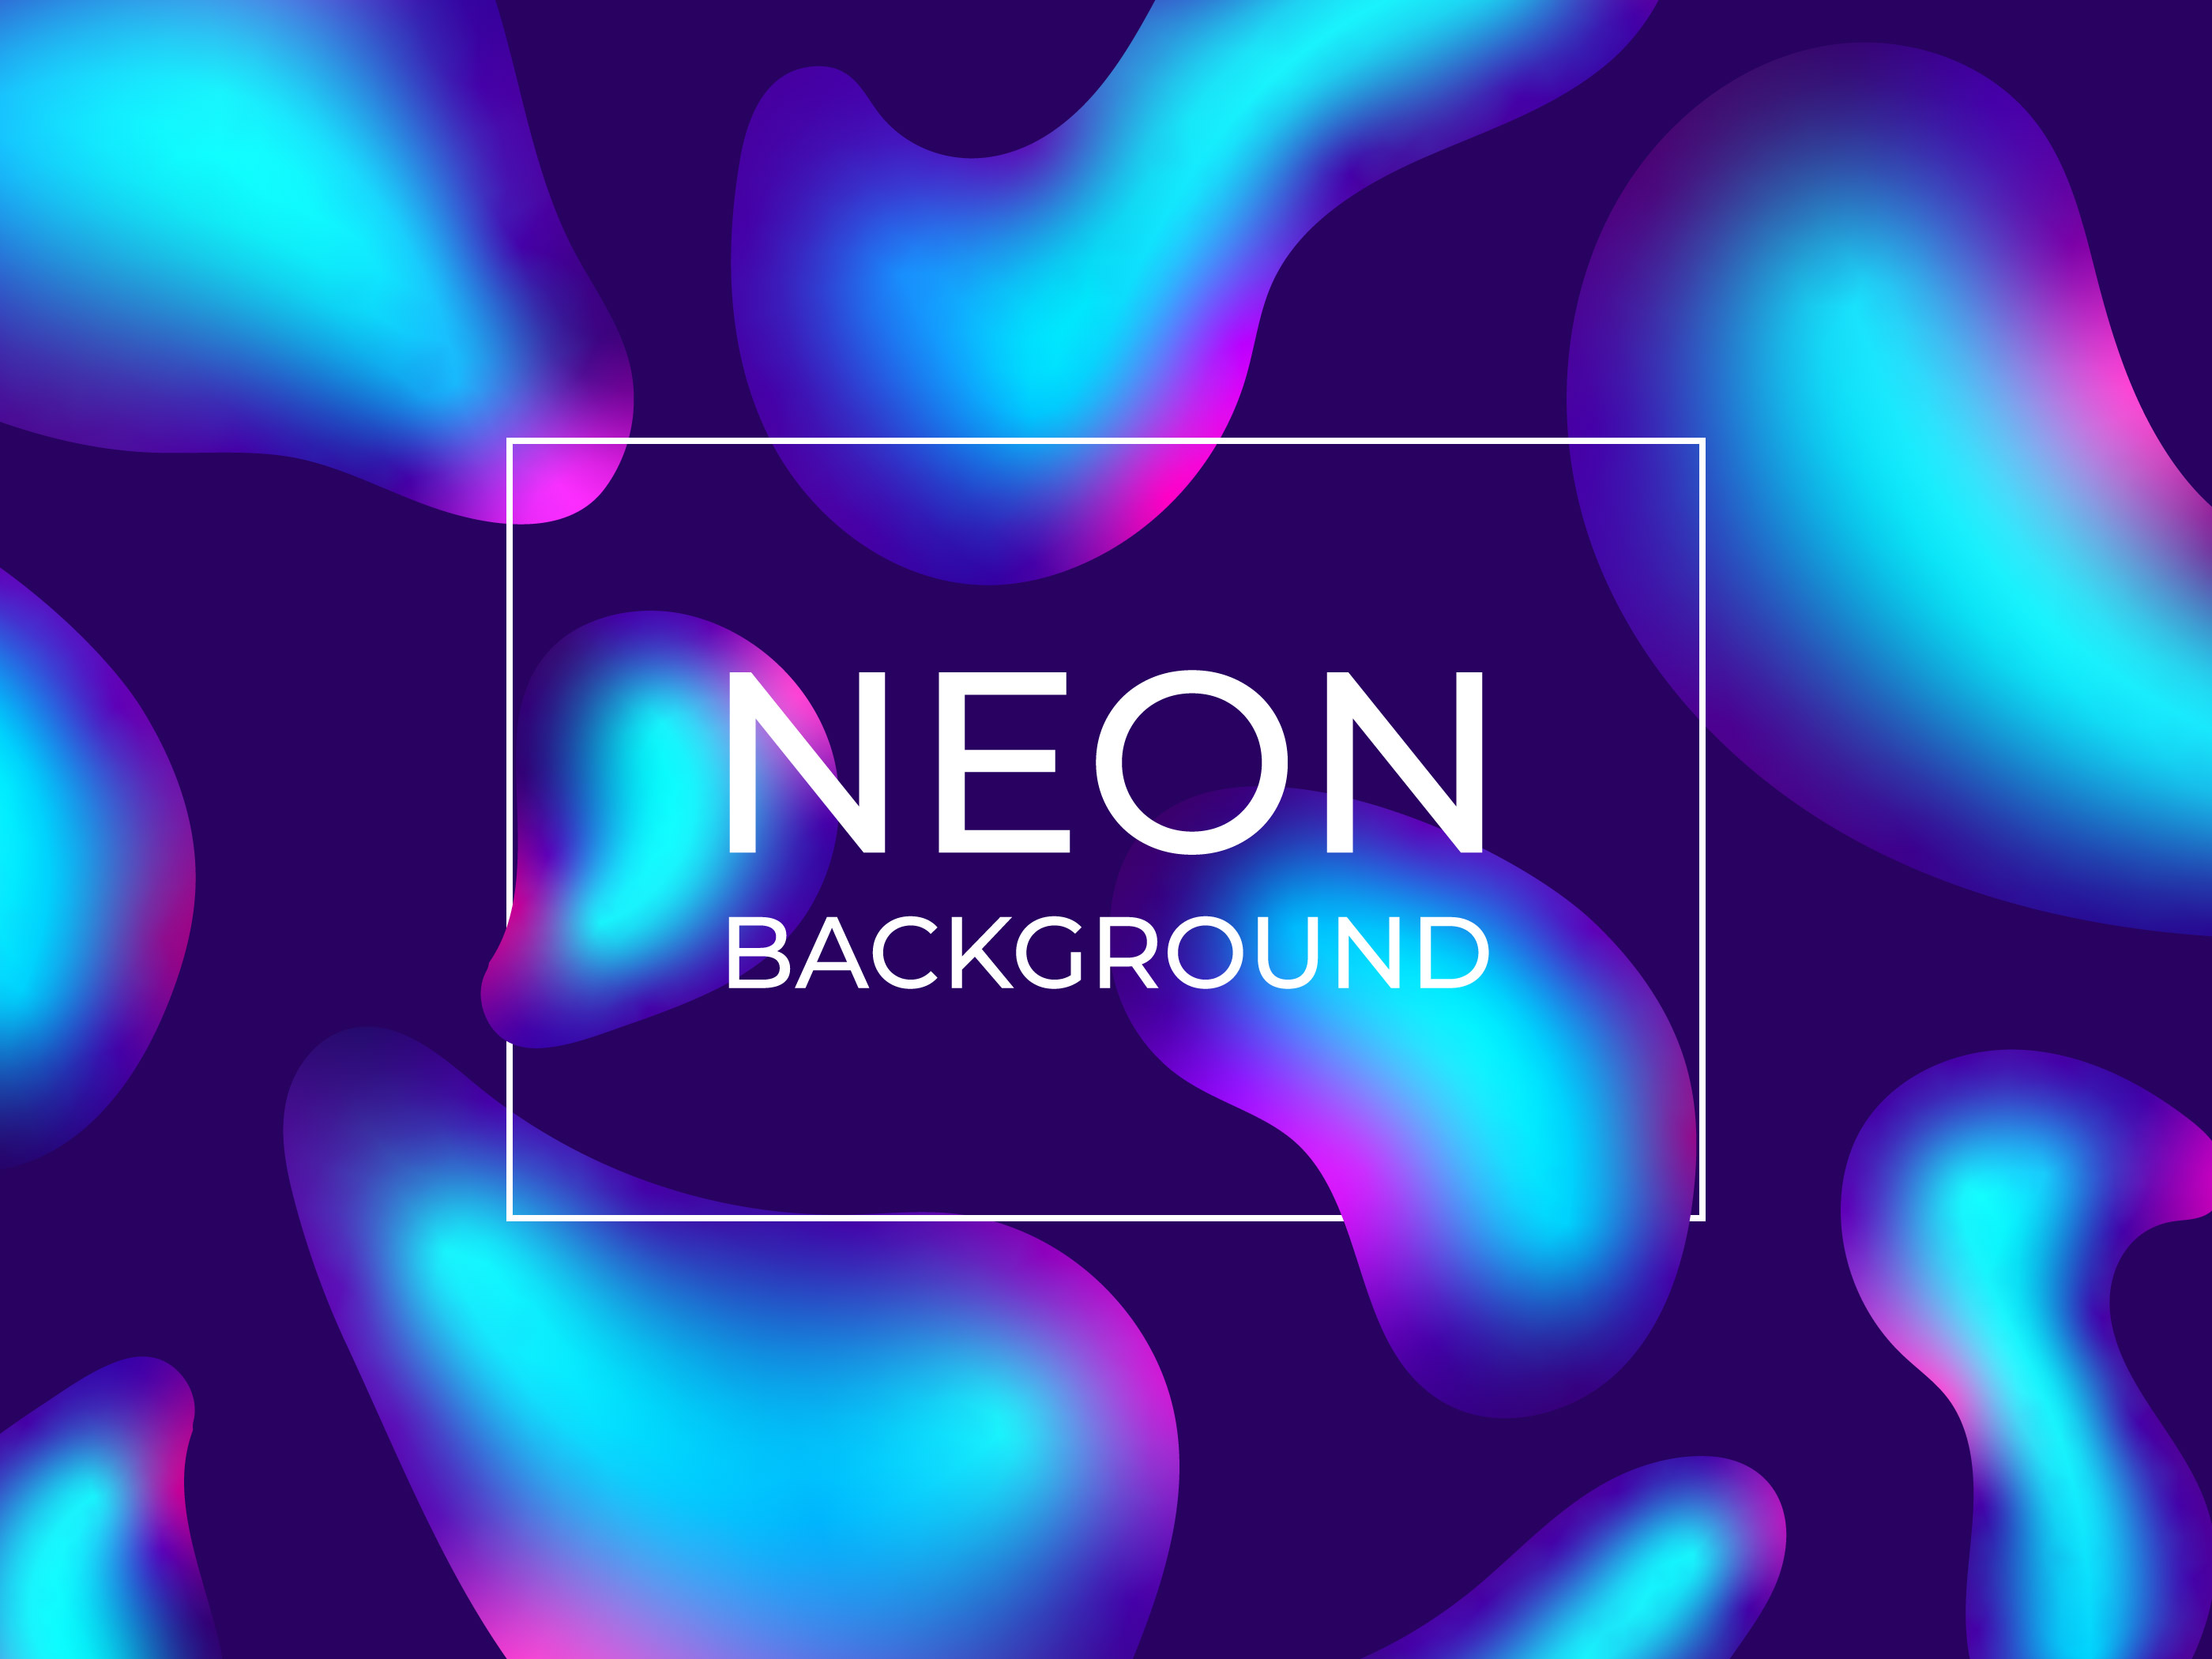 3d Geometric Shapes Wallpaper White Neon Fluid Abstract Background Download Free Vectors